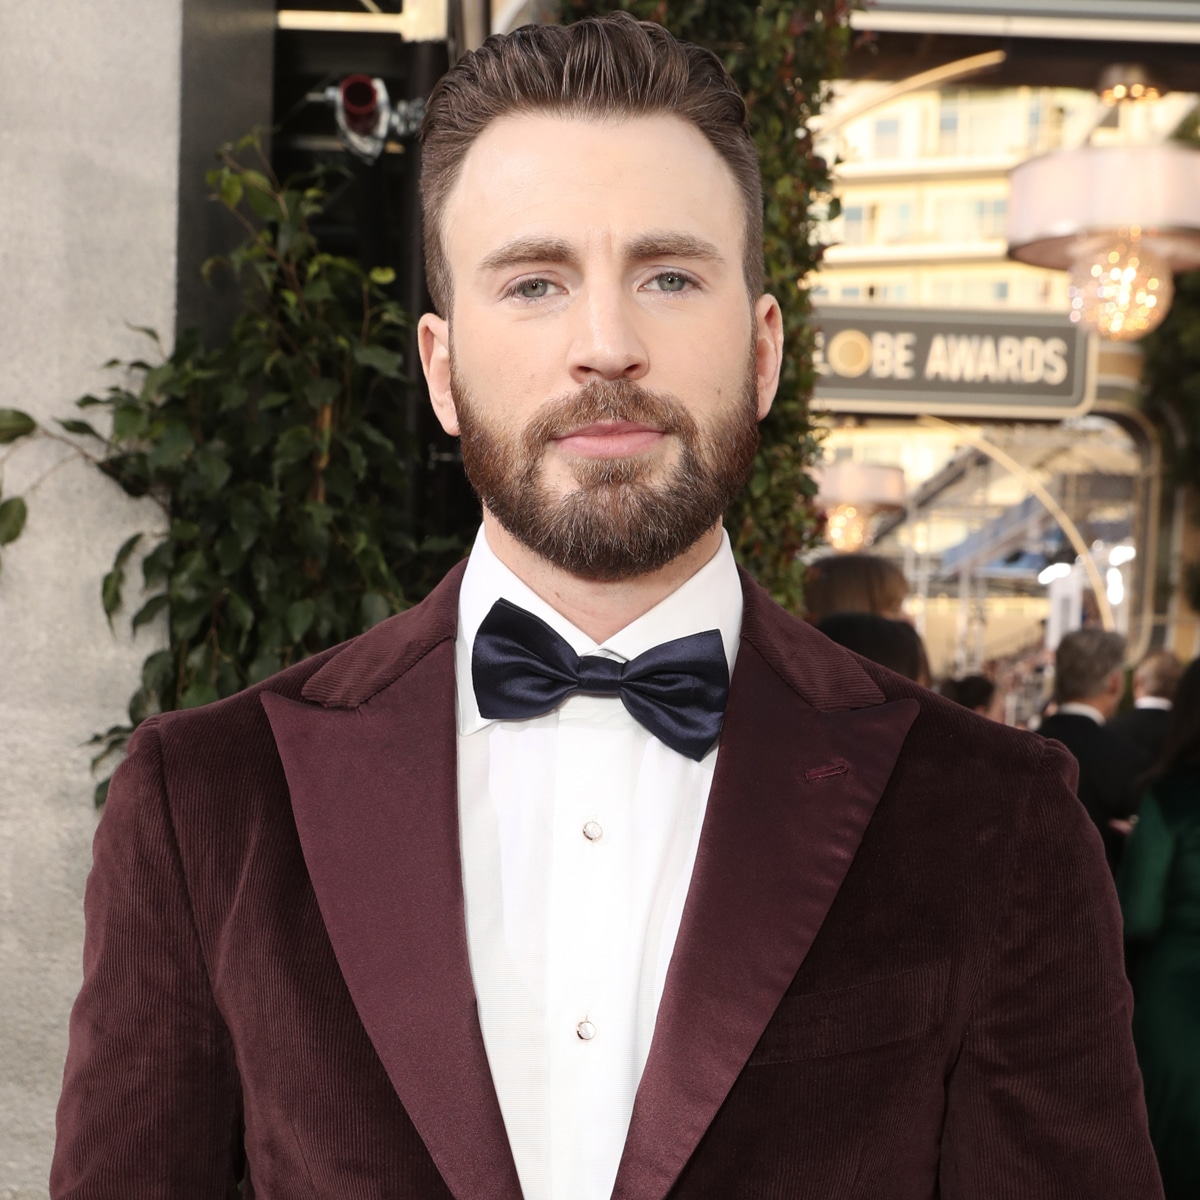 Chris Evans Fans Marvel Over His Abs And Tattoos In New Video E Online Deutschland There are 95 joshua gomez for sale on etsy, and they cost $13.94 on average. chris evans fans marvel over his abs